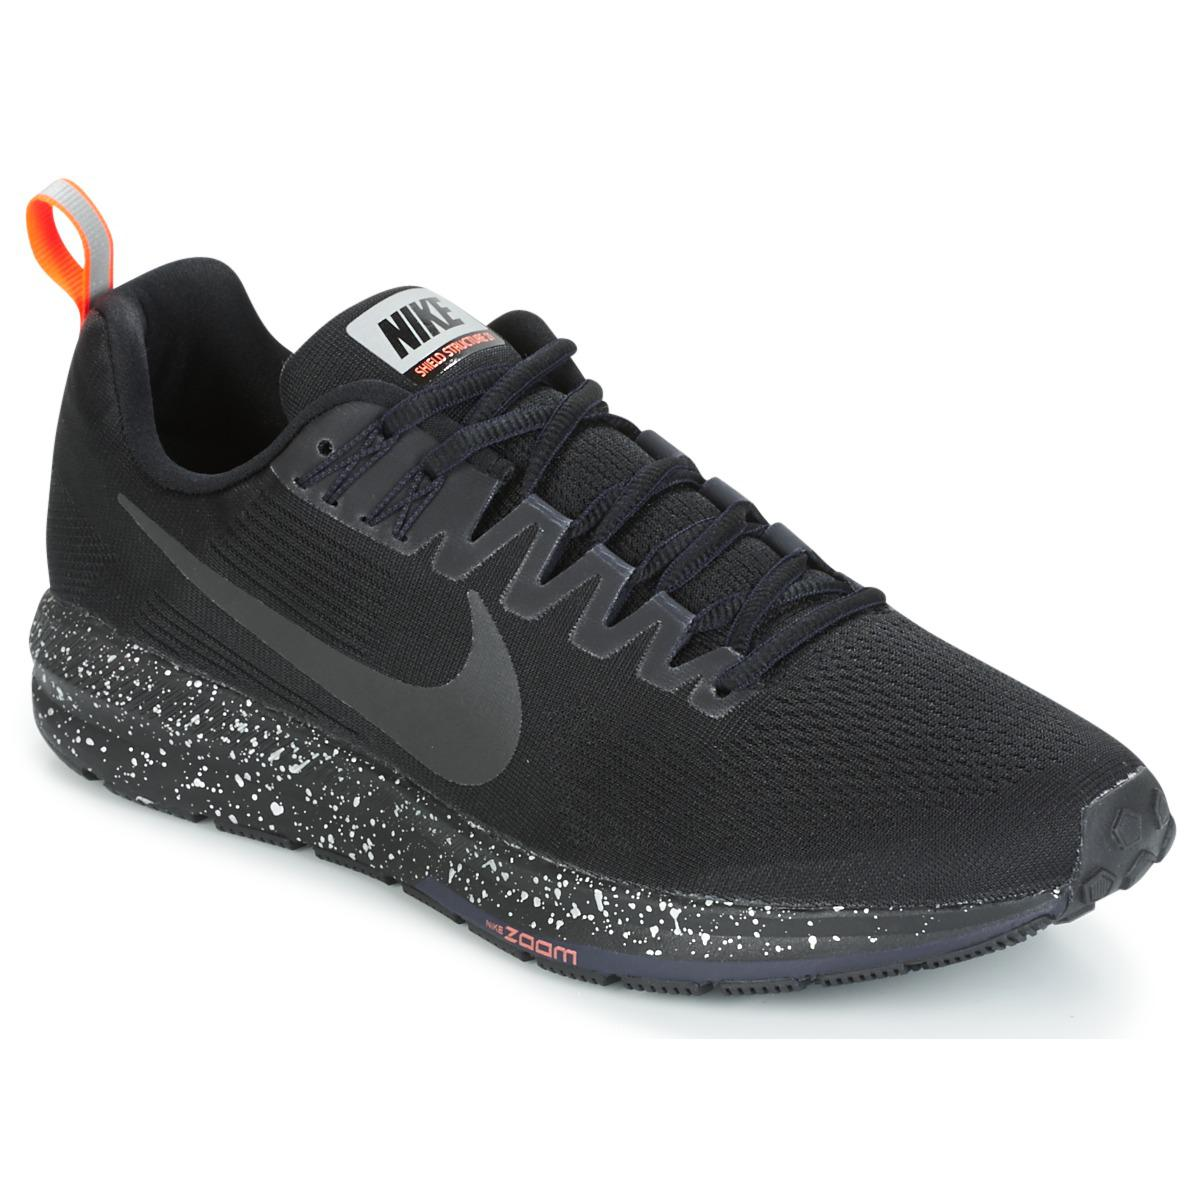 88029543fa68 Nike Air Zoom Structure 21 Shield Men s Running Trainers In Black in ...